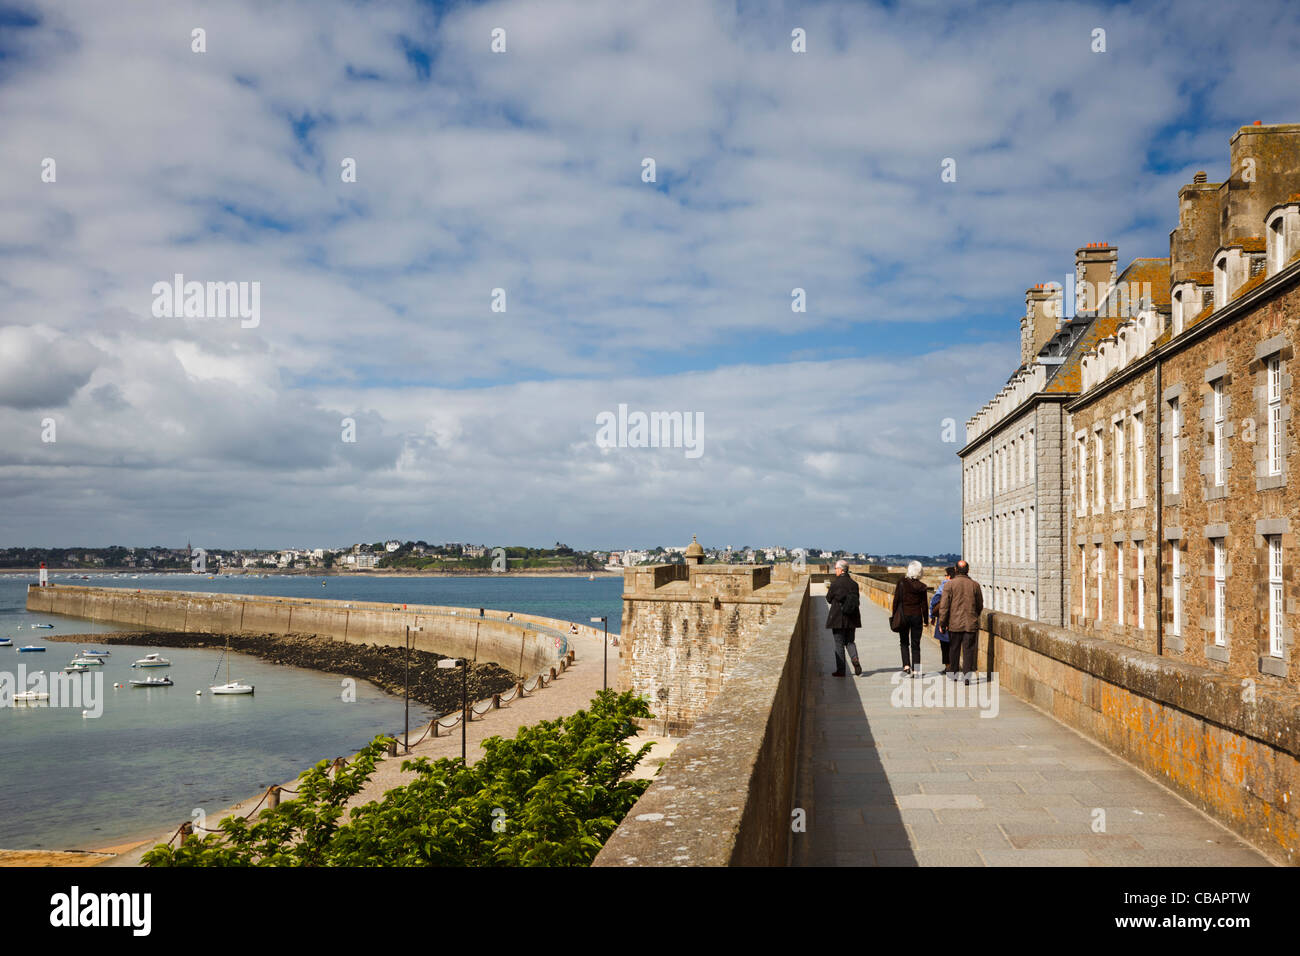 St Malo, Brittany, France - tourists walking along the city walls - Stock Image